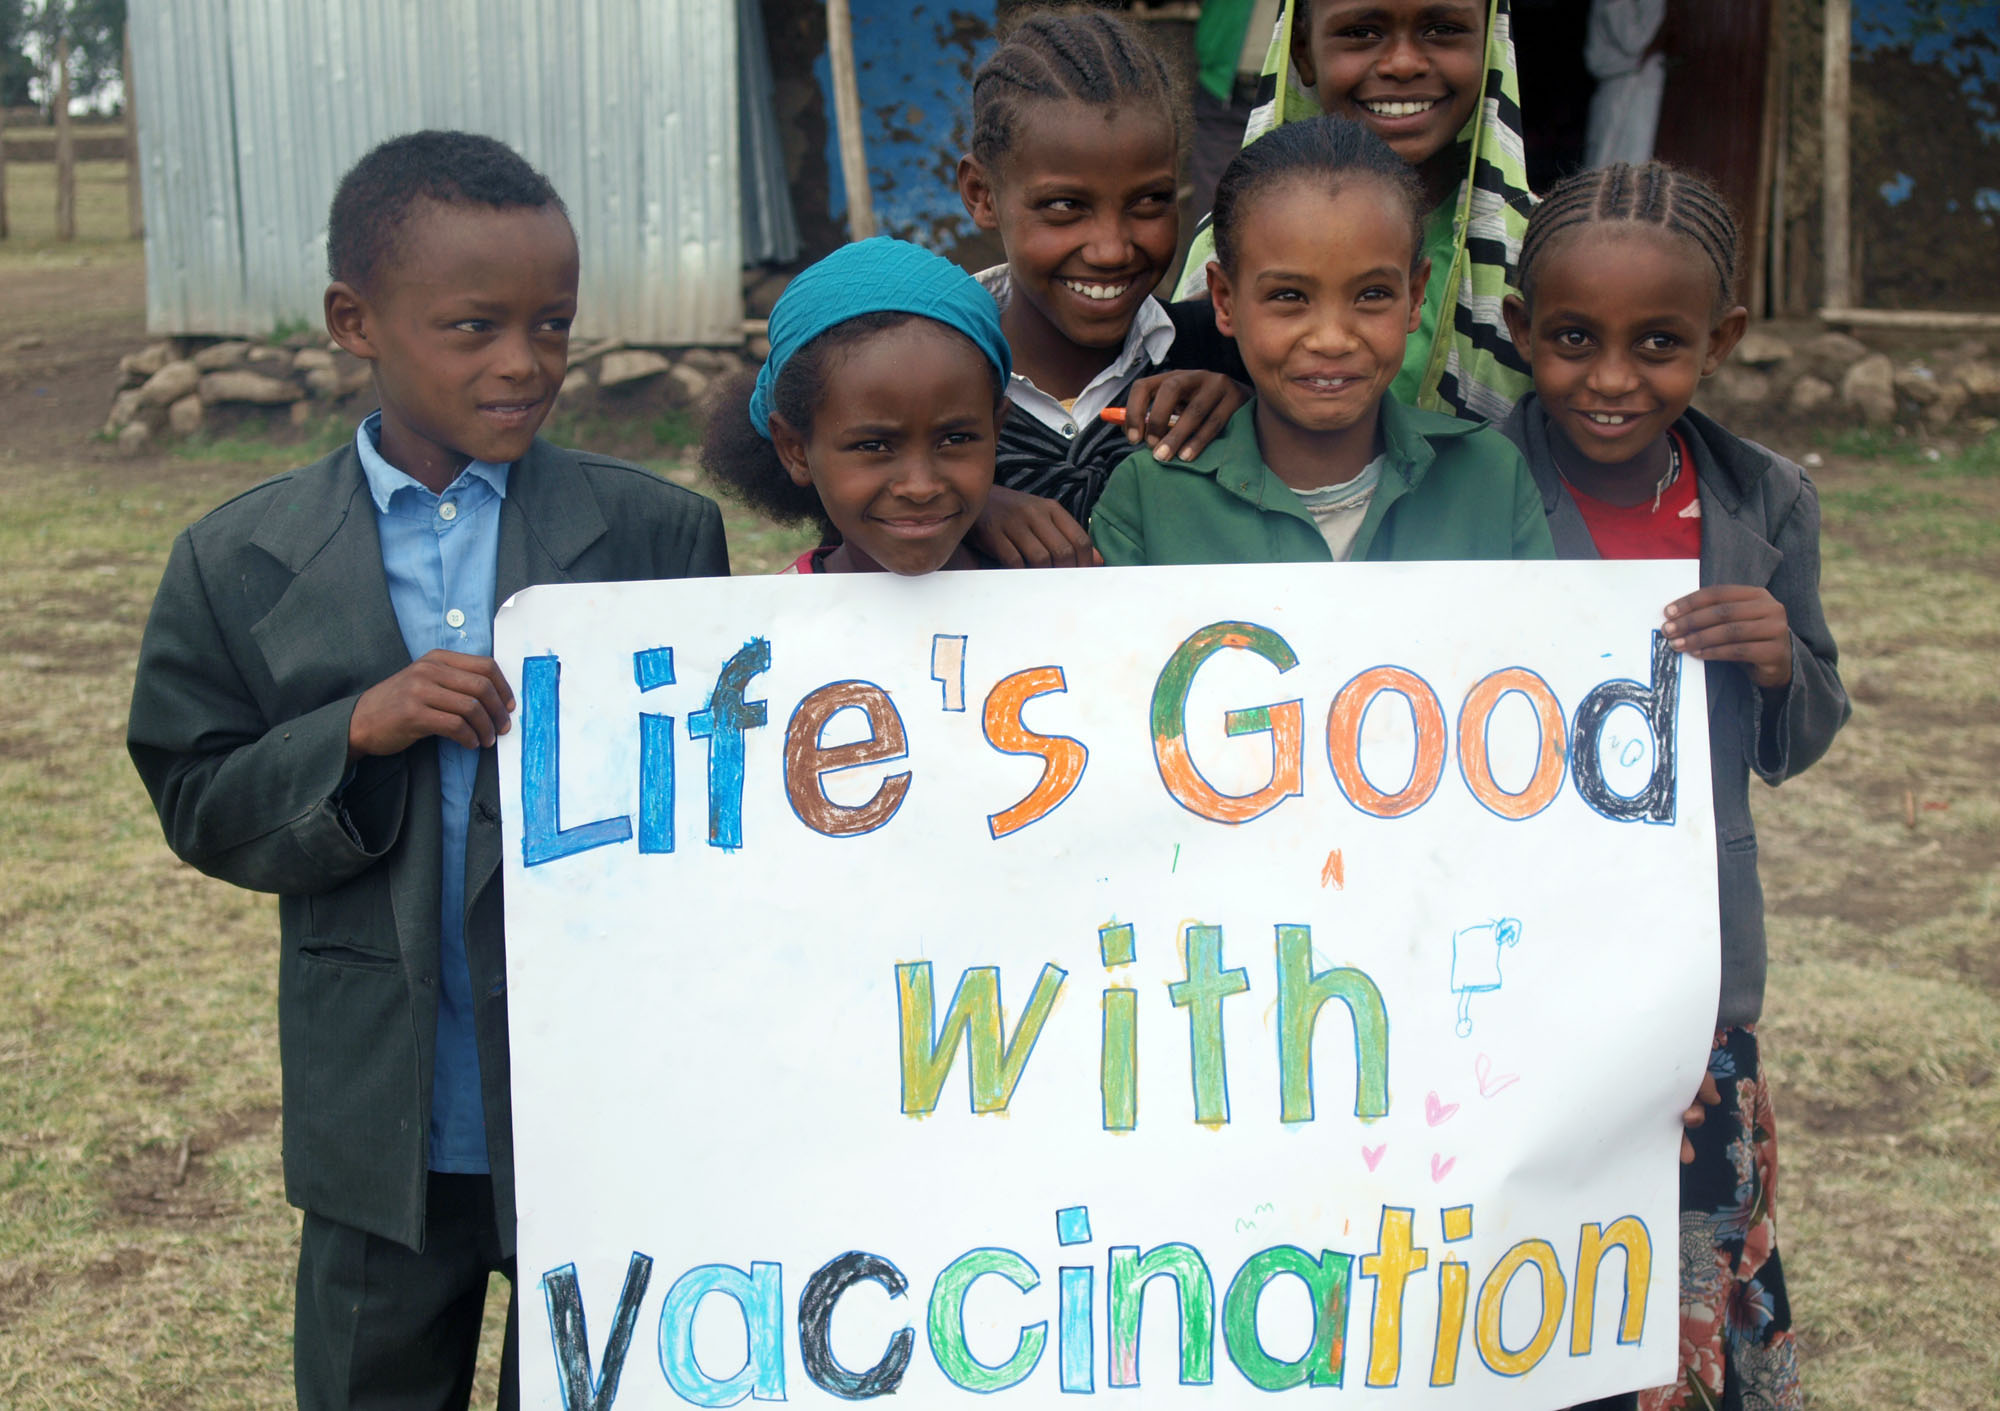 """Children hold a """"Life's Good with vaccination"""" sign together with smiles."""